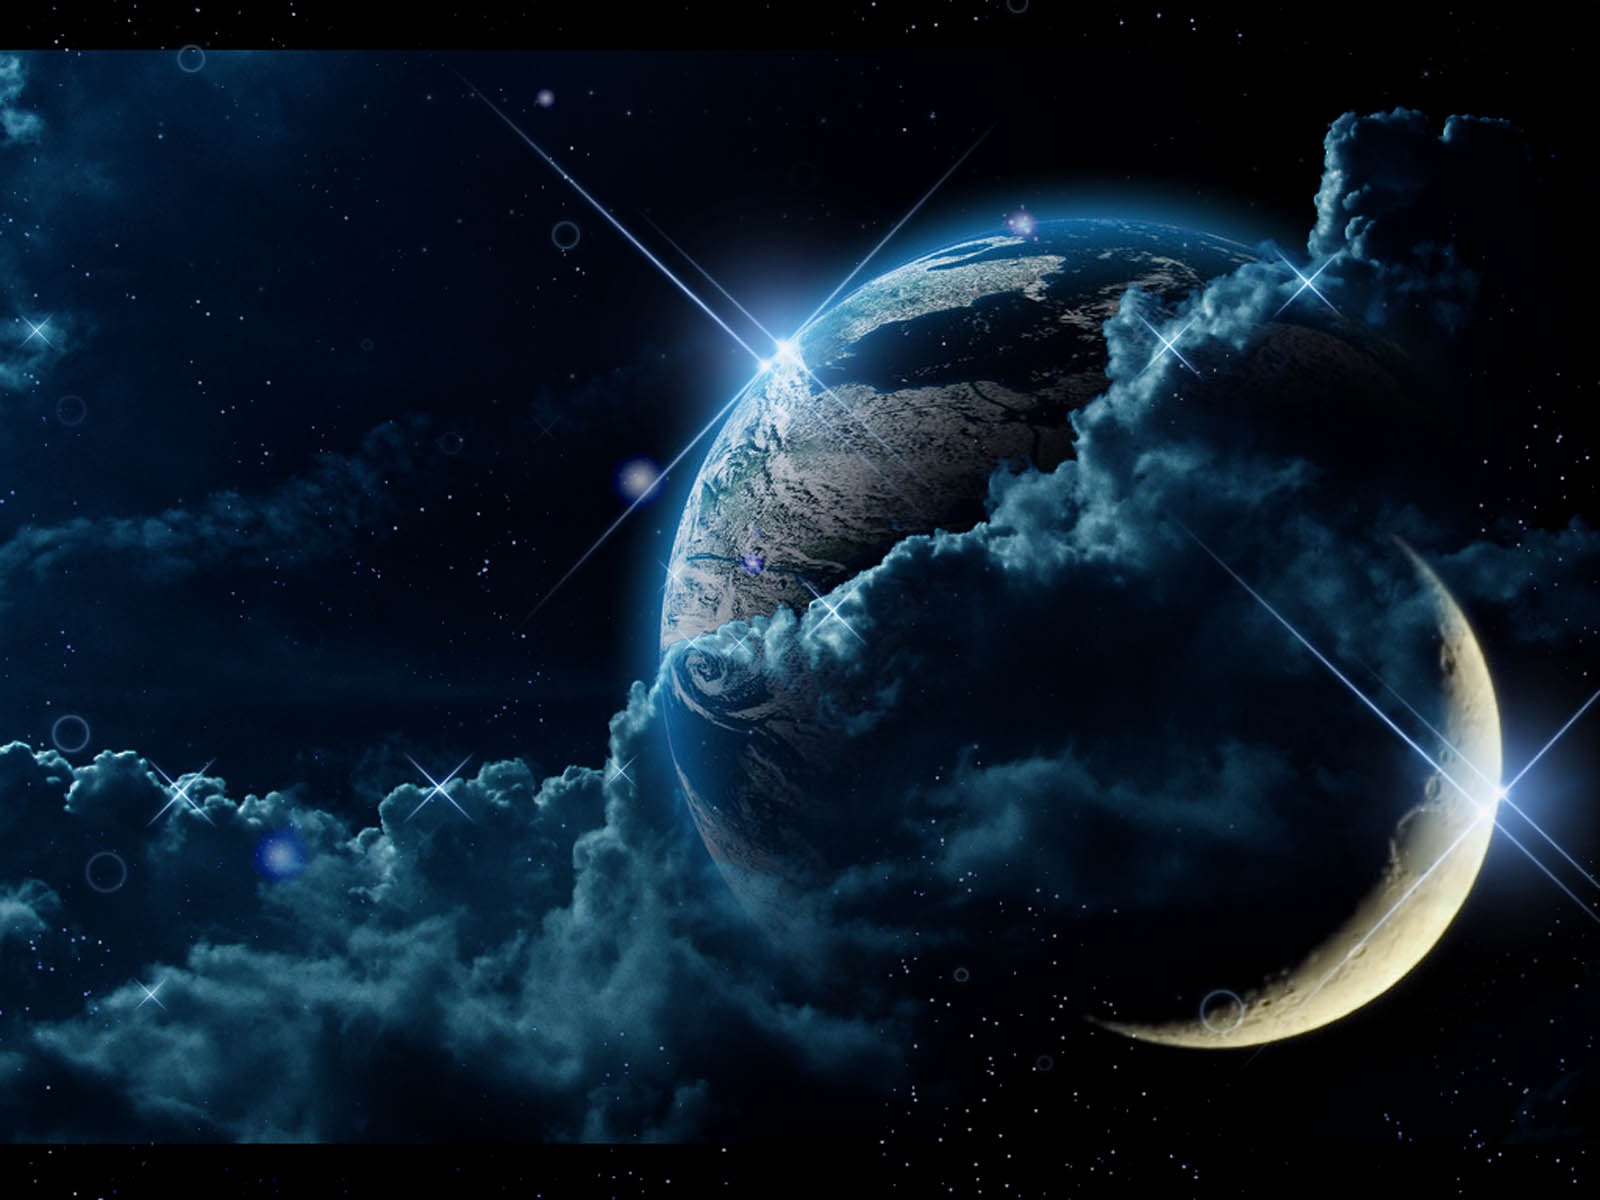 Tag Moon Fantasy Wallpapers Backgrounds Paos Images and Pictures 1600x1200